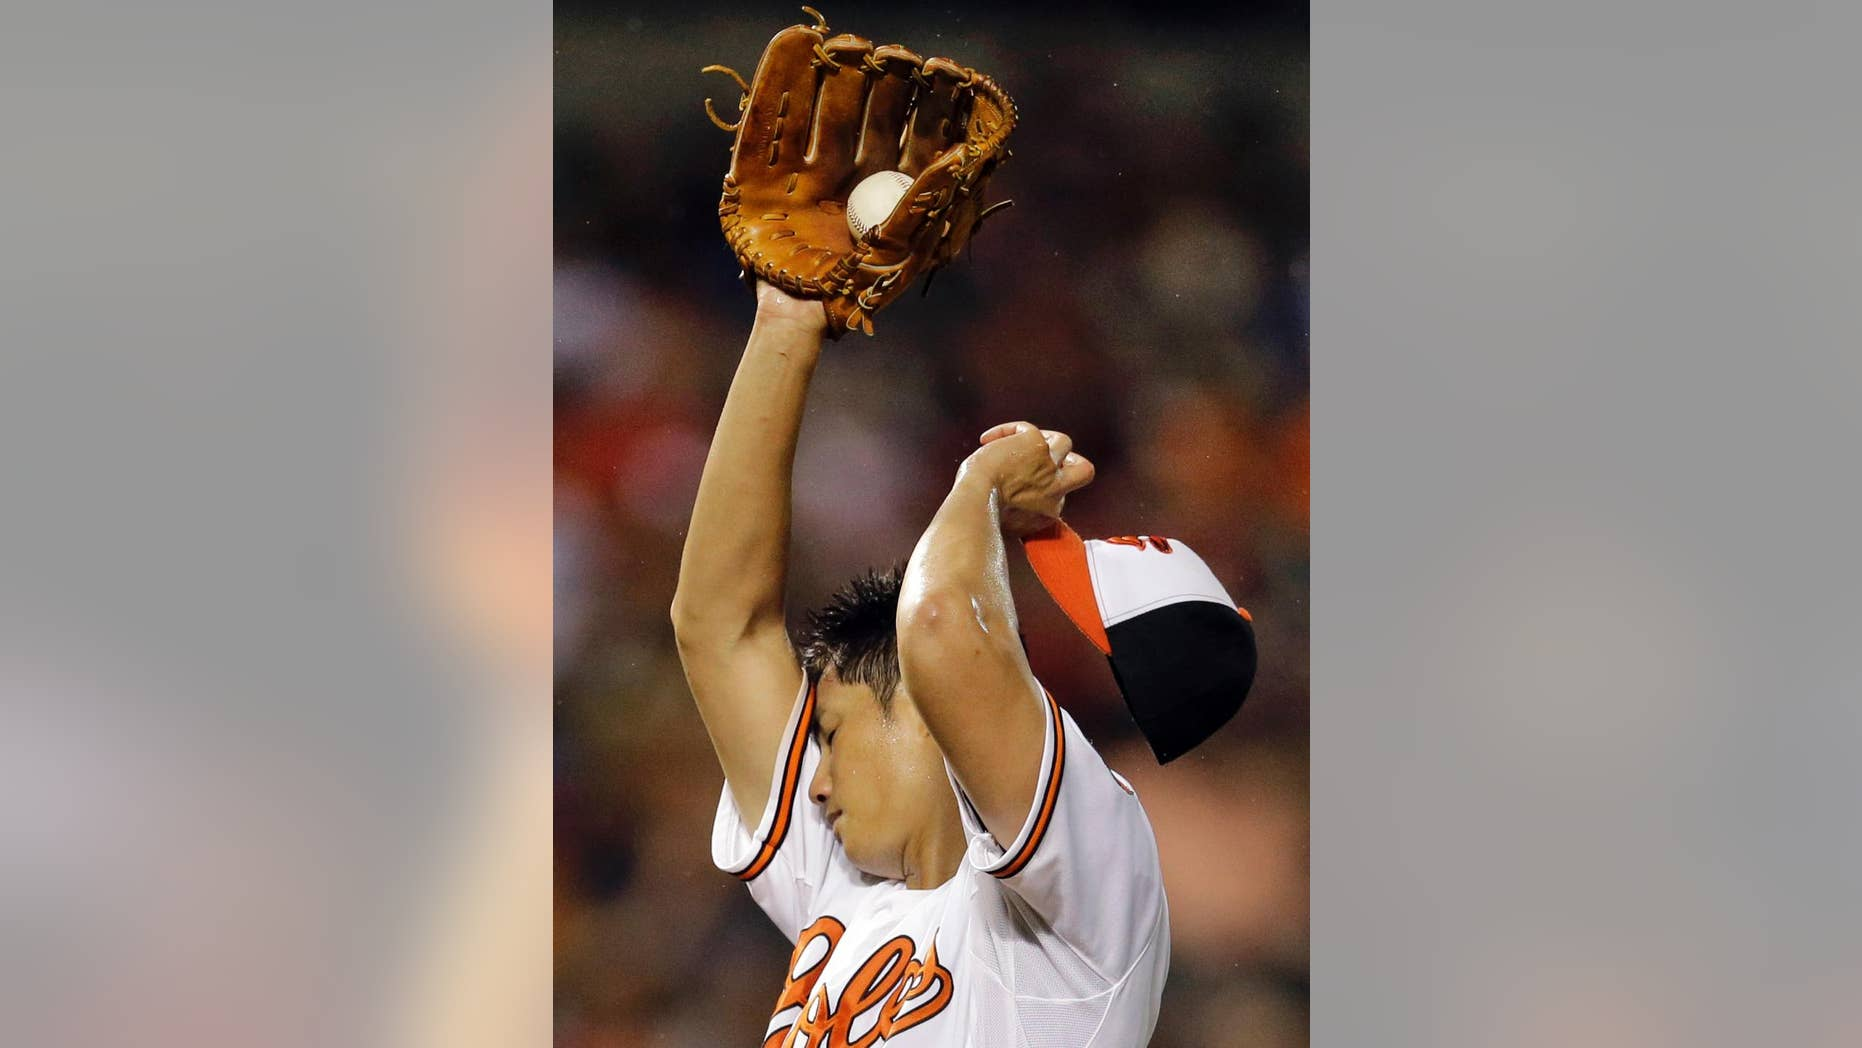 Baltimore Orioles starting pitcher Wei-Yin Chen, of Taiwan,  wipes sweat from his face after Washington Nationals'  Ryan Zimmerman doubled in the sixth inning of an interleague baseball game, Thursday, July 10, 2014, in Baltimore. Chen was relieved later in the sixth. (AP Photo/Patrick Semansky)